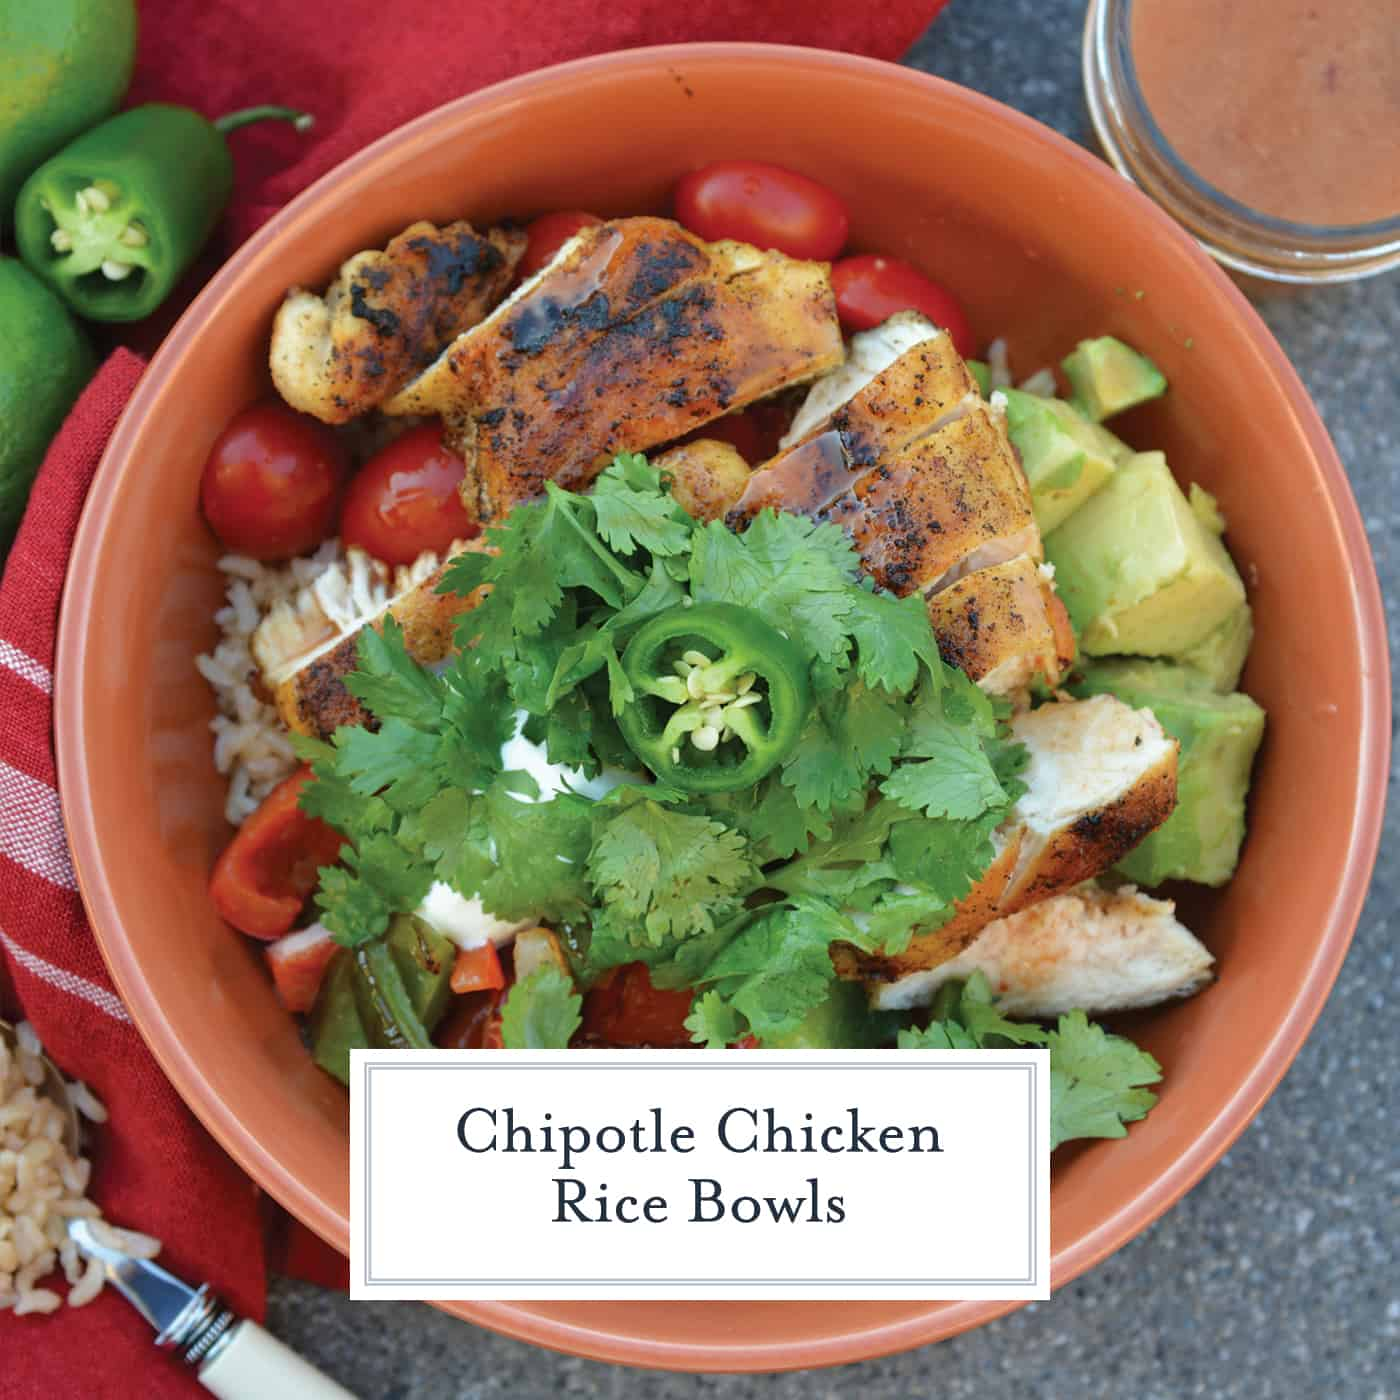 Chipotle Chicken Rice Bowls are made with zesty chipotle chicken, fresh produce and sweet dressing. Meal prep in just 30 minutes! #chipotlechicken #mealprep www.savoryexperiments.com